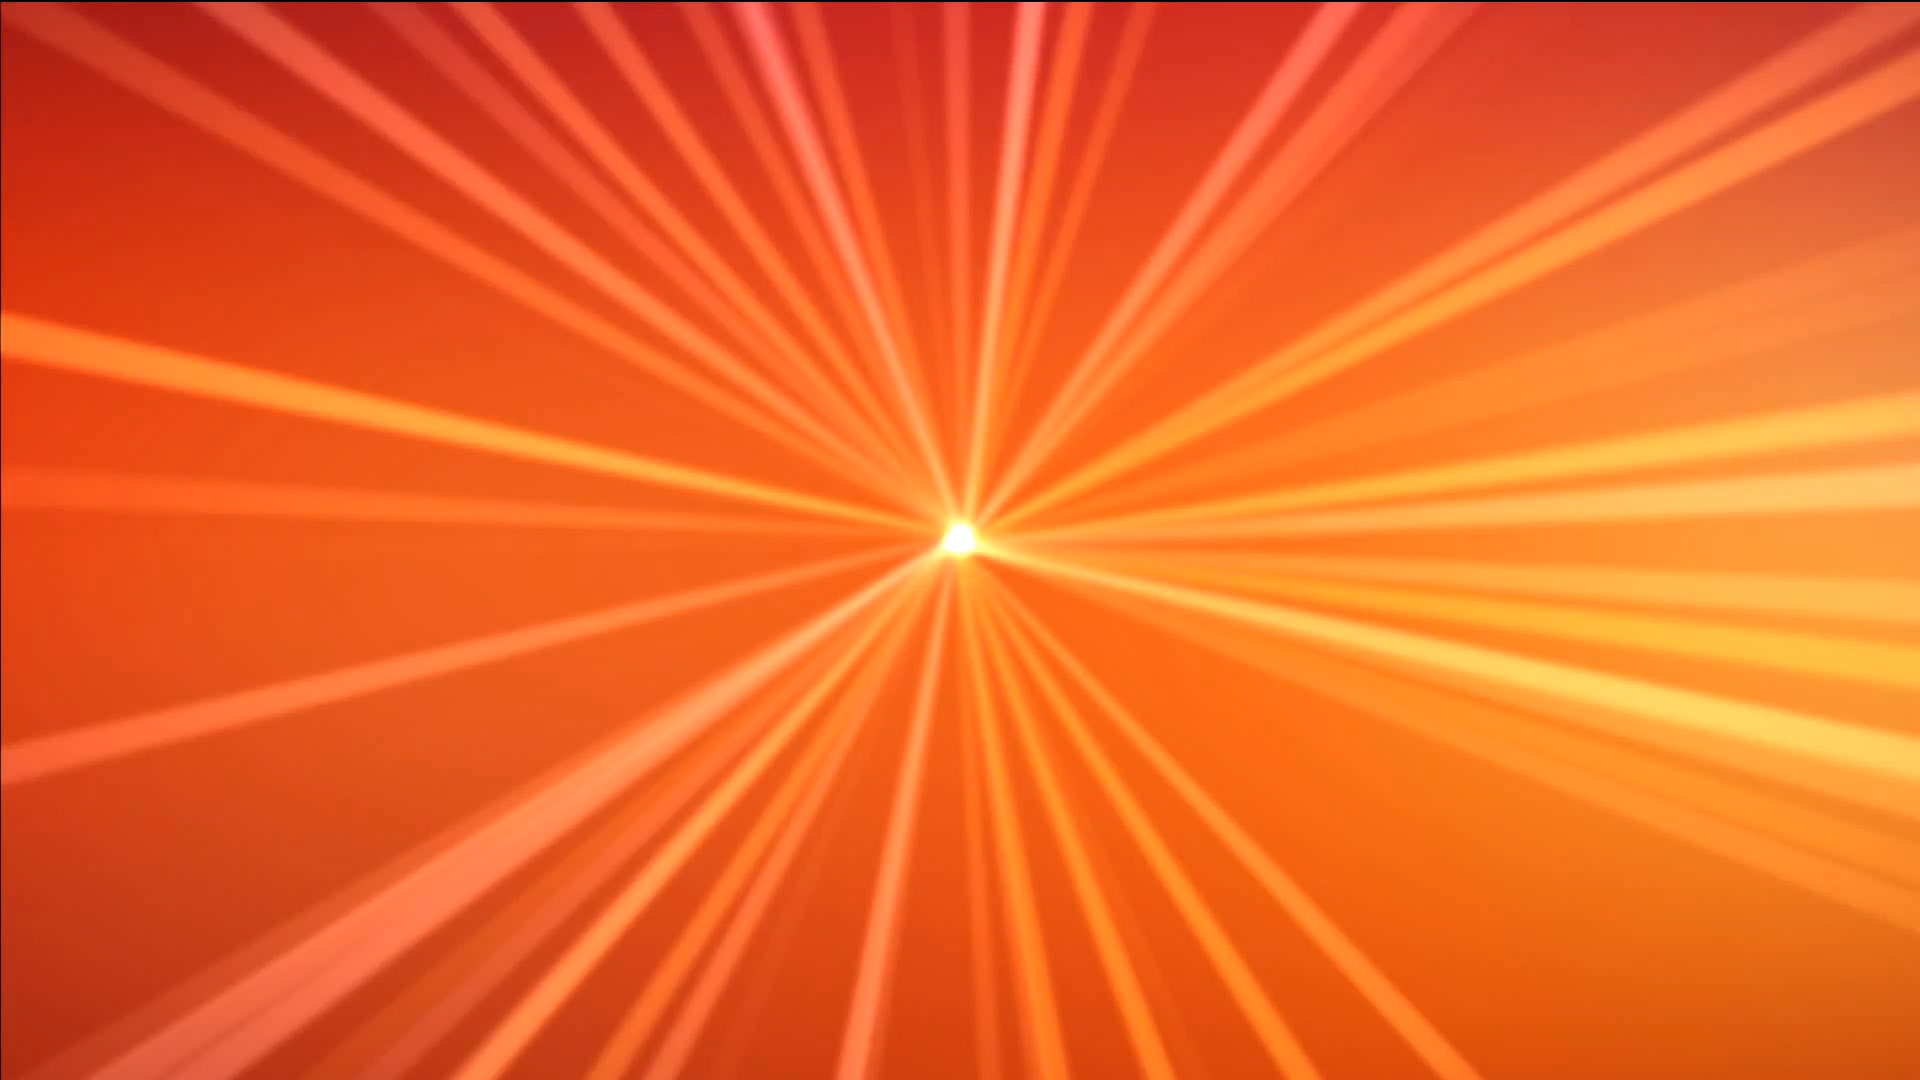 Abstract lights on orange background Video for intro